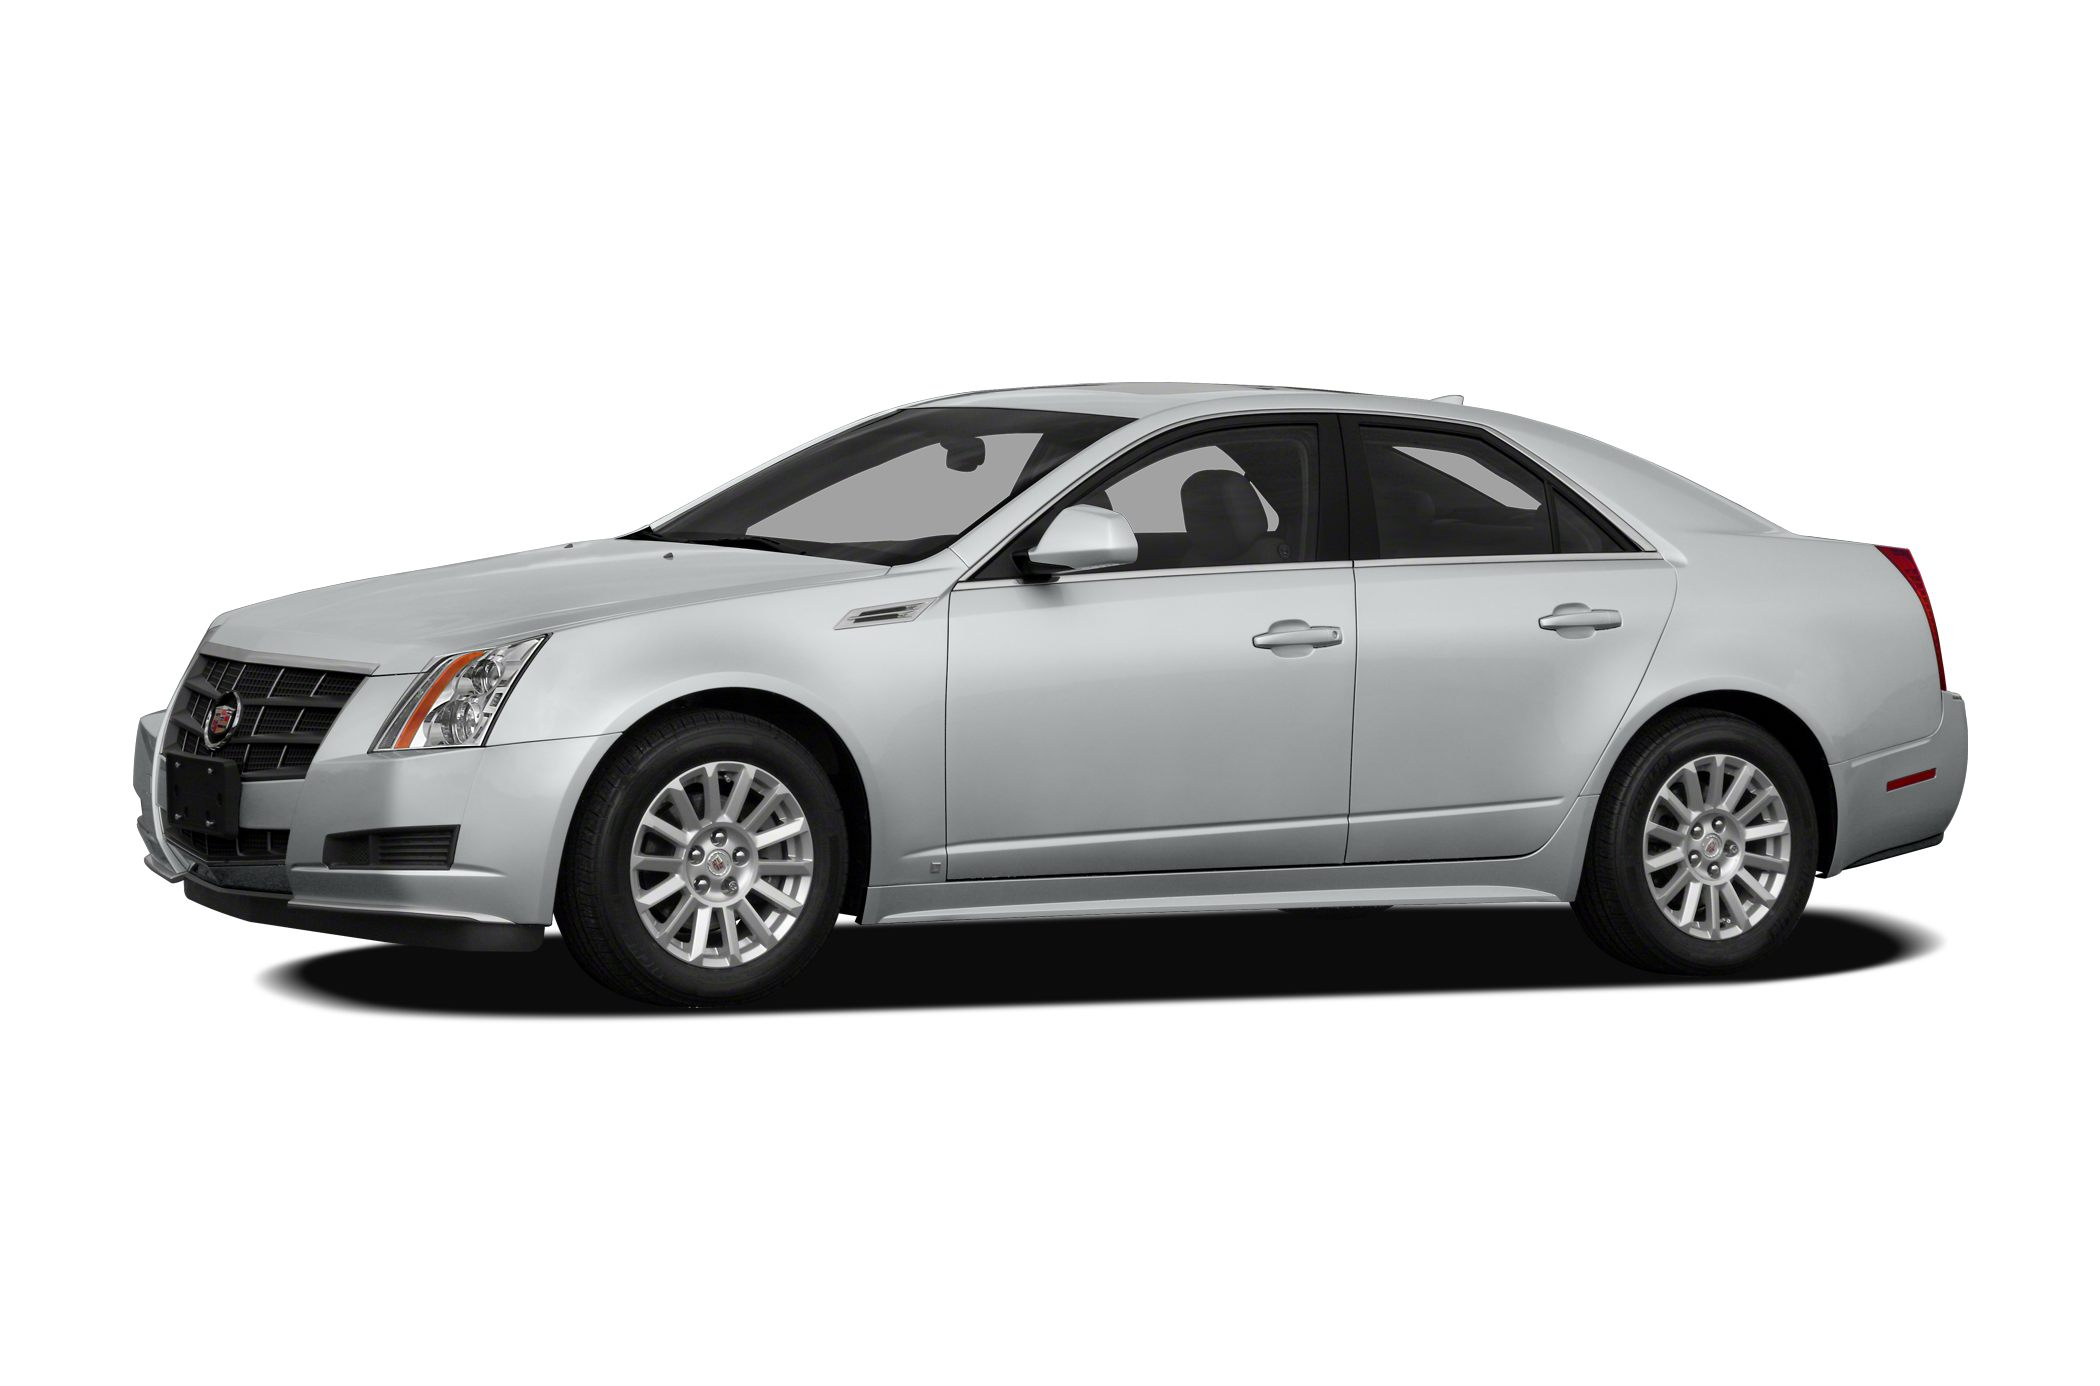 2010 Cadillac CTS Performance This 2010 Cadillac CTS Performance is a real winner with features li